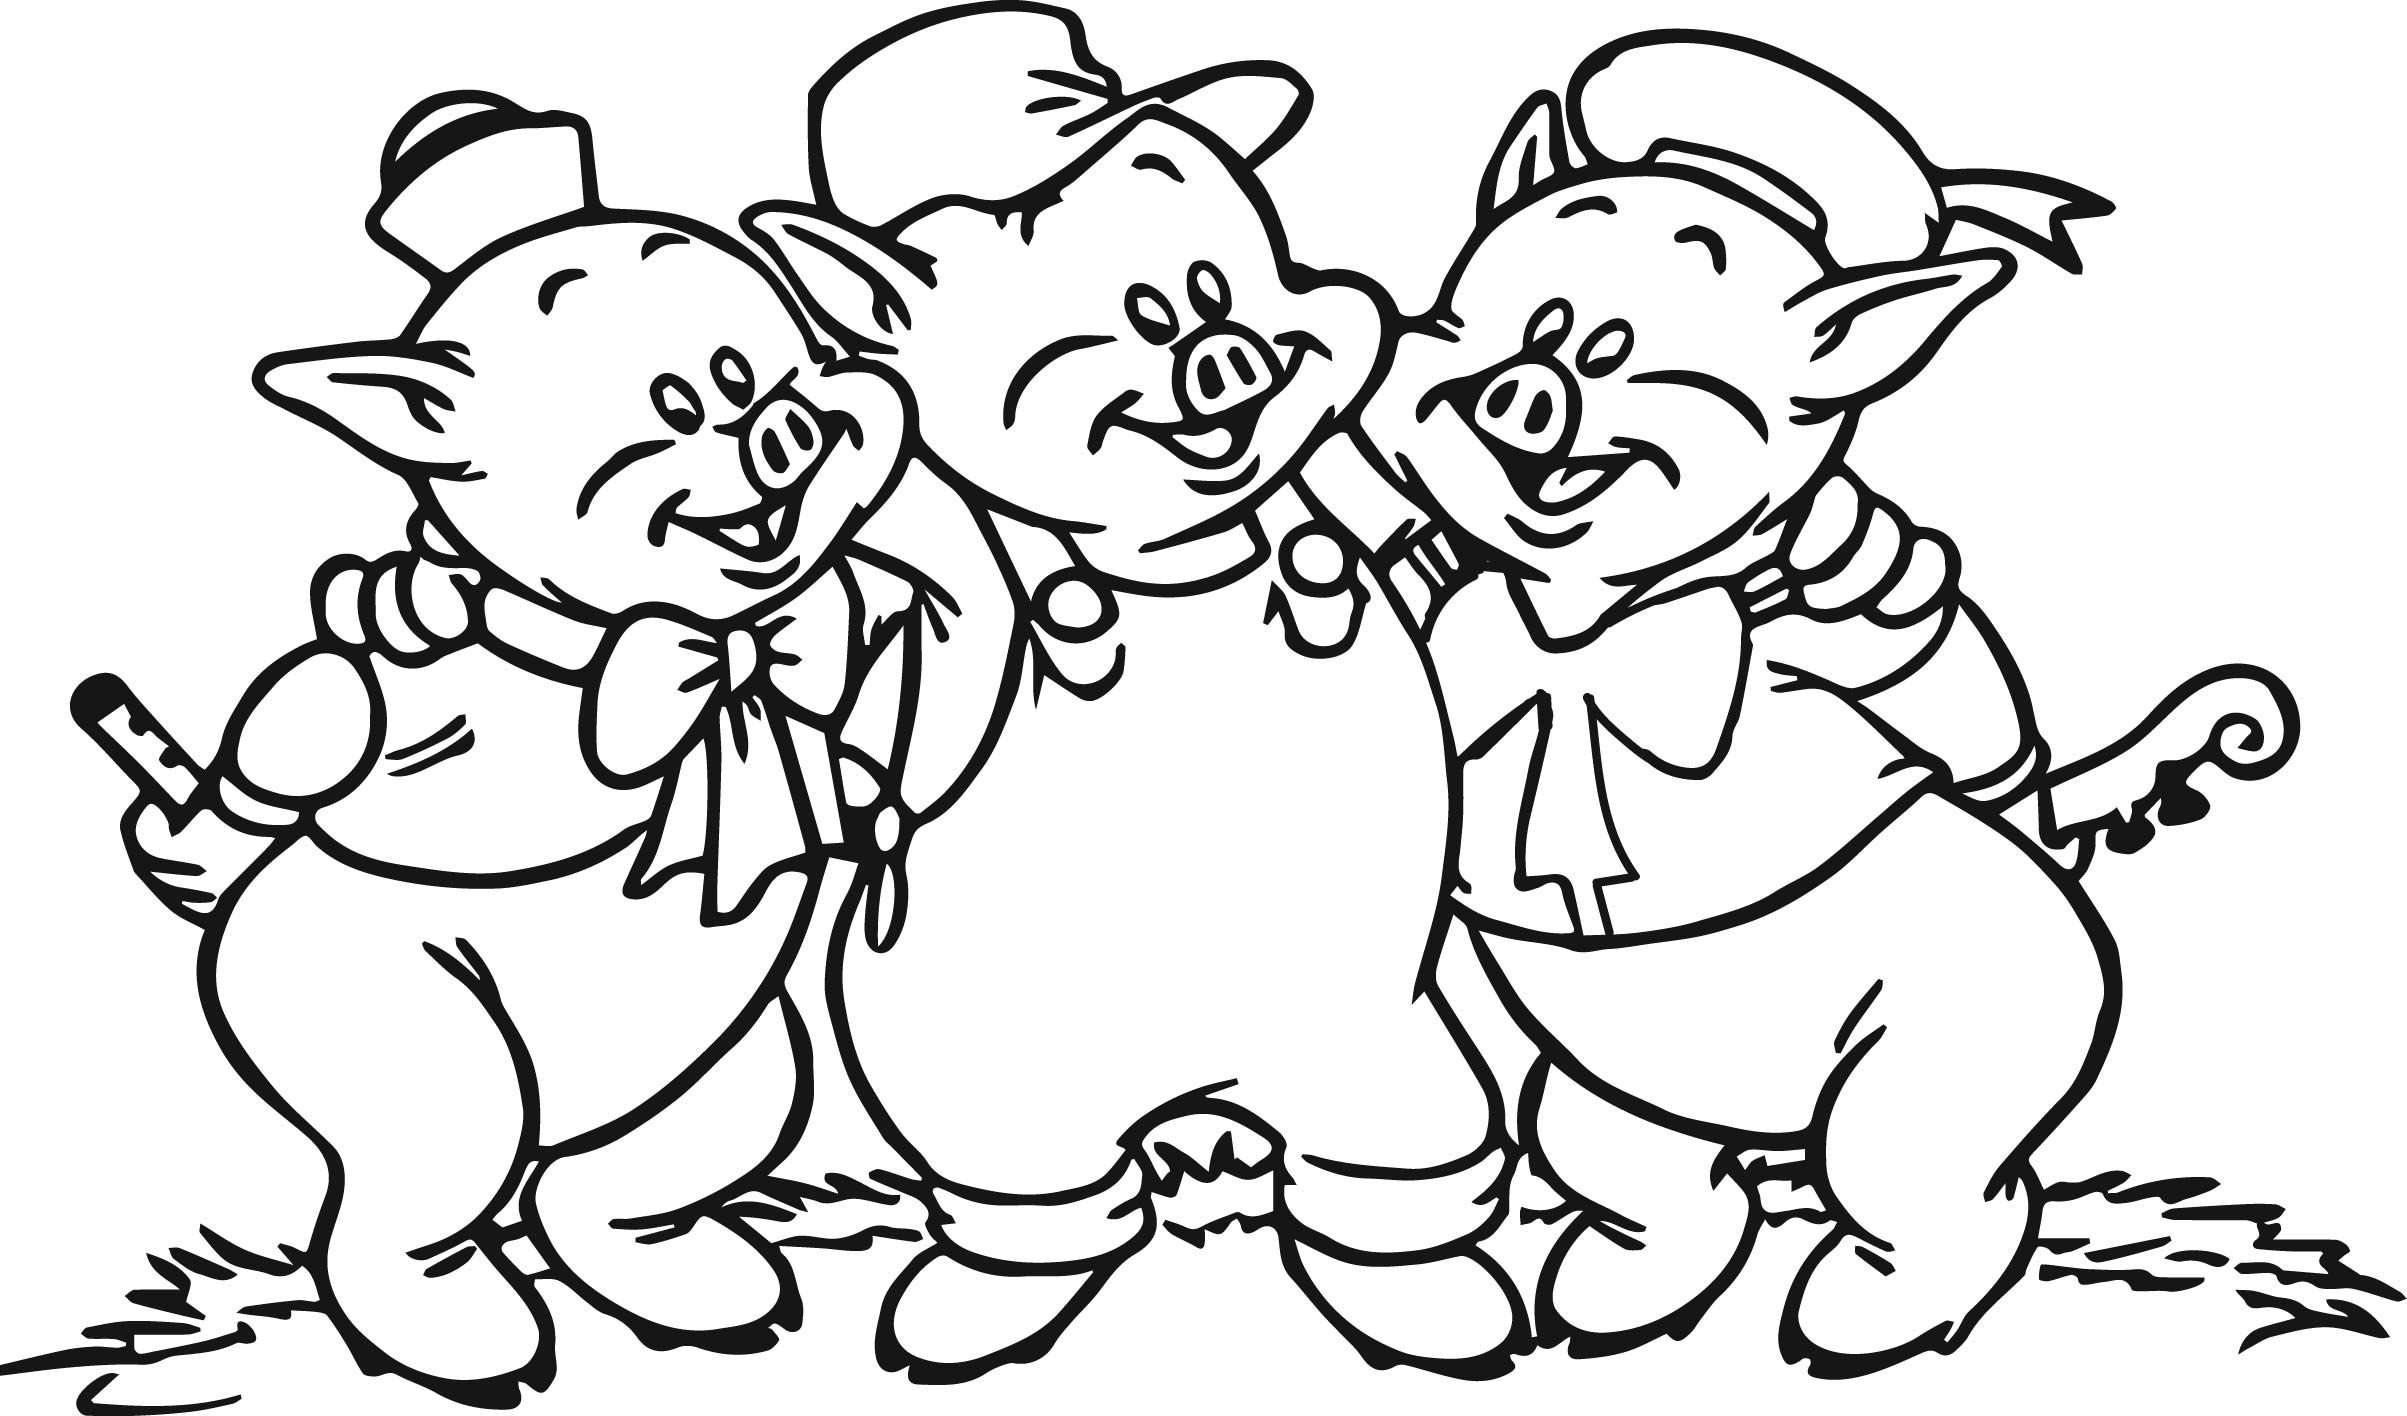 coloring page pig pig coloring page for kids images animal place page coloring pig